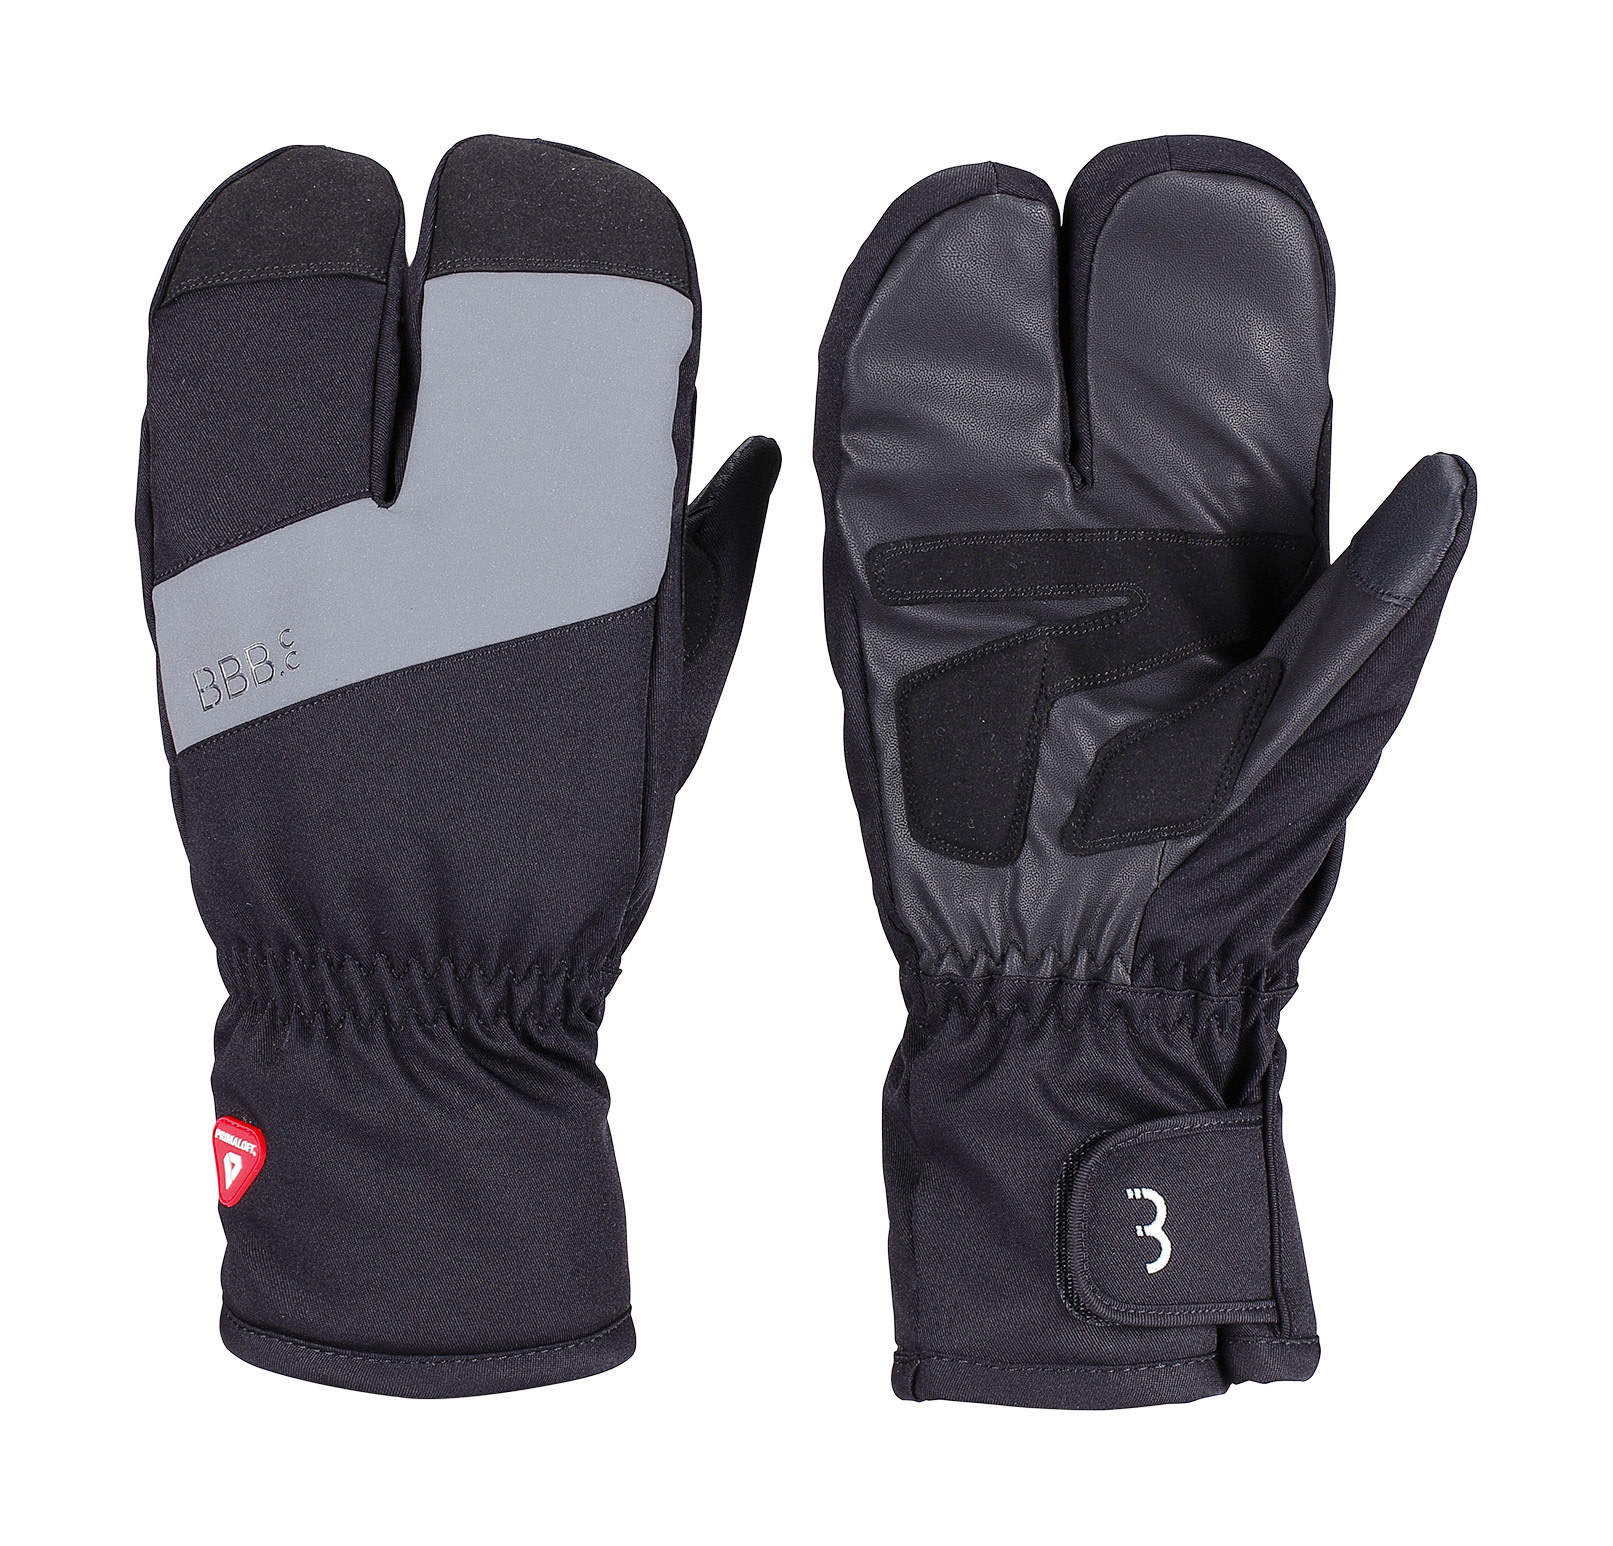 BBB BWG-35 - SUBZERO 2 X 2 WINTER GLOVES (BLACK, L)